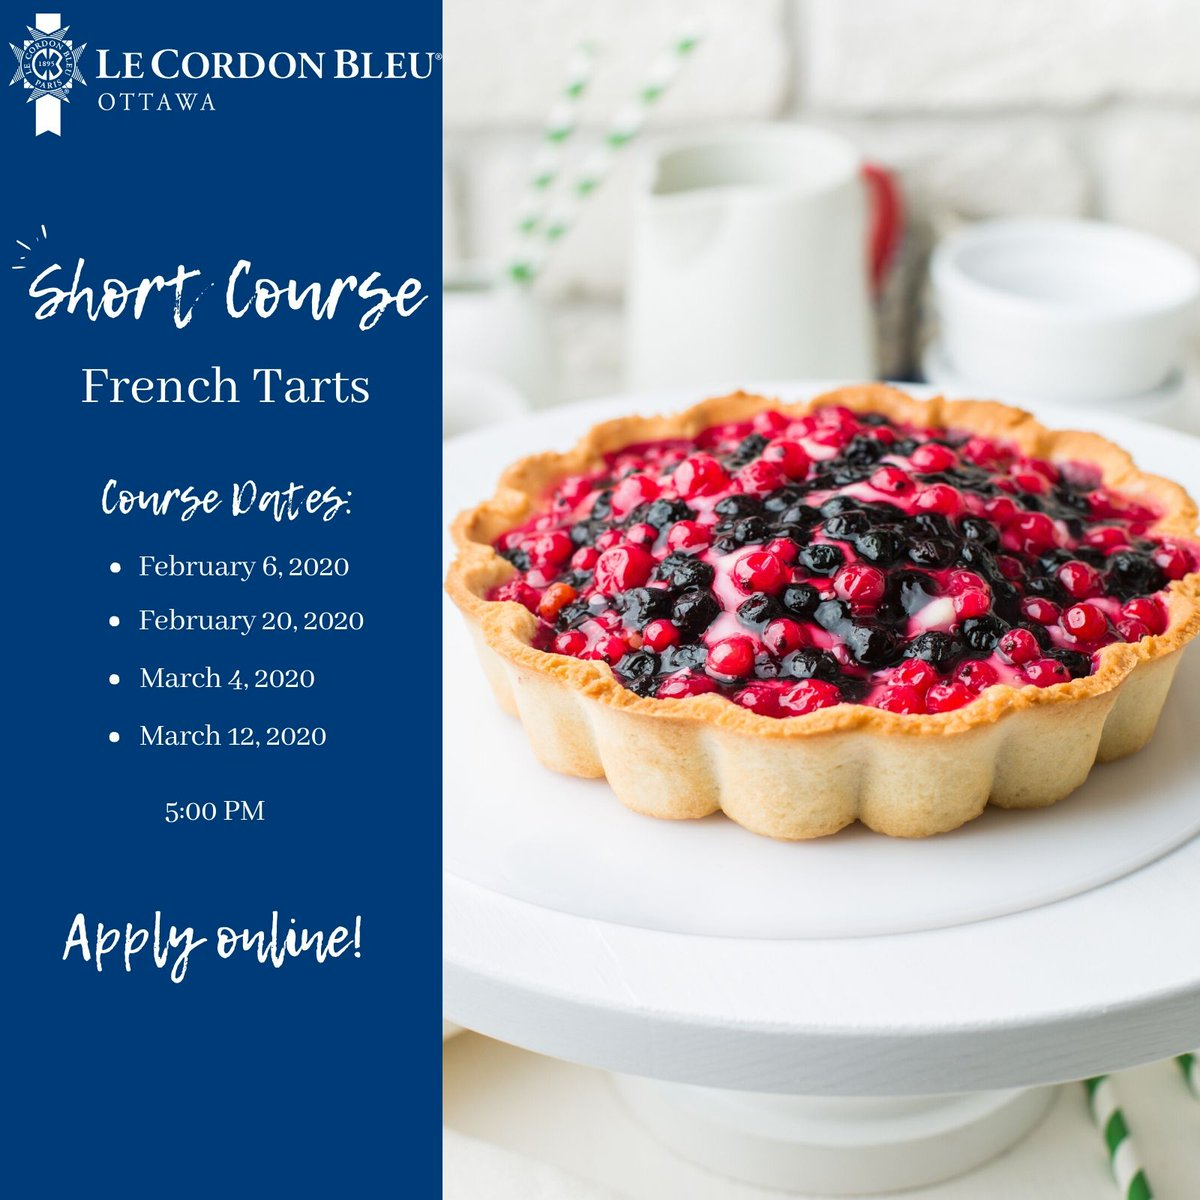 Short Course - #FrenchTarts. In this class, you will learn how to prepare a seasonal tart. Experience #LeCordonBleuOttawa Short Courses and apply online! http://lcbl.eu/9e5    #OttawaEvents #OttawaFoodies #MyOttawa #ottawaeats #baking #pastry #pastrychefpic.twitter.com/gD3Kjo4Hqv